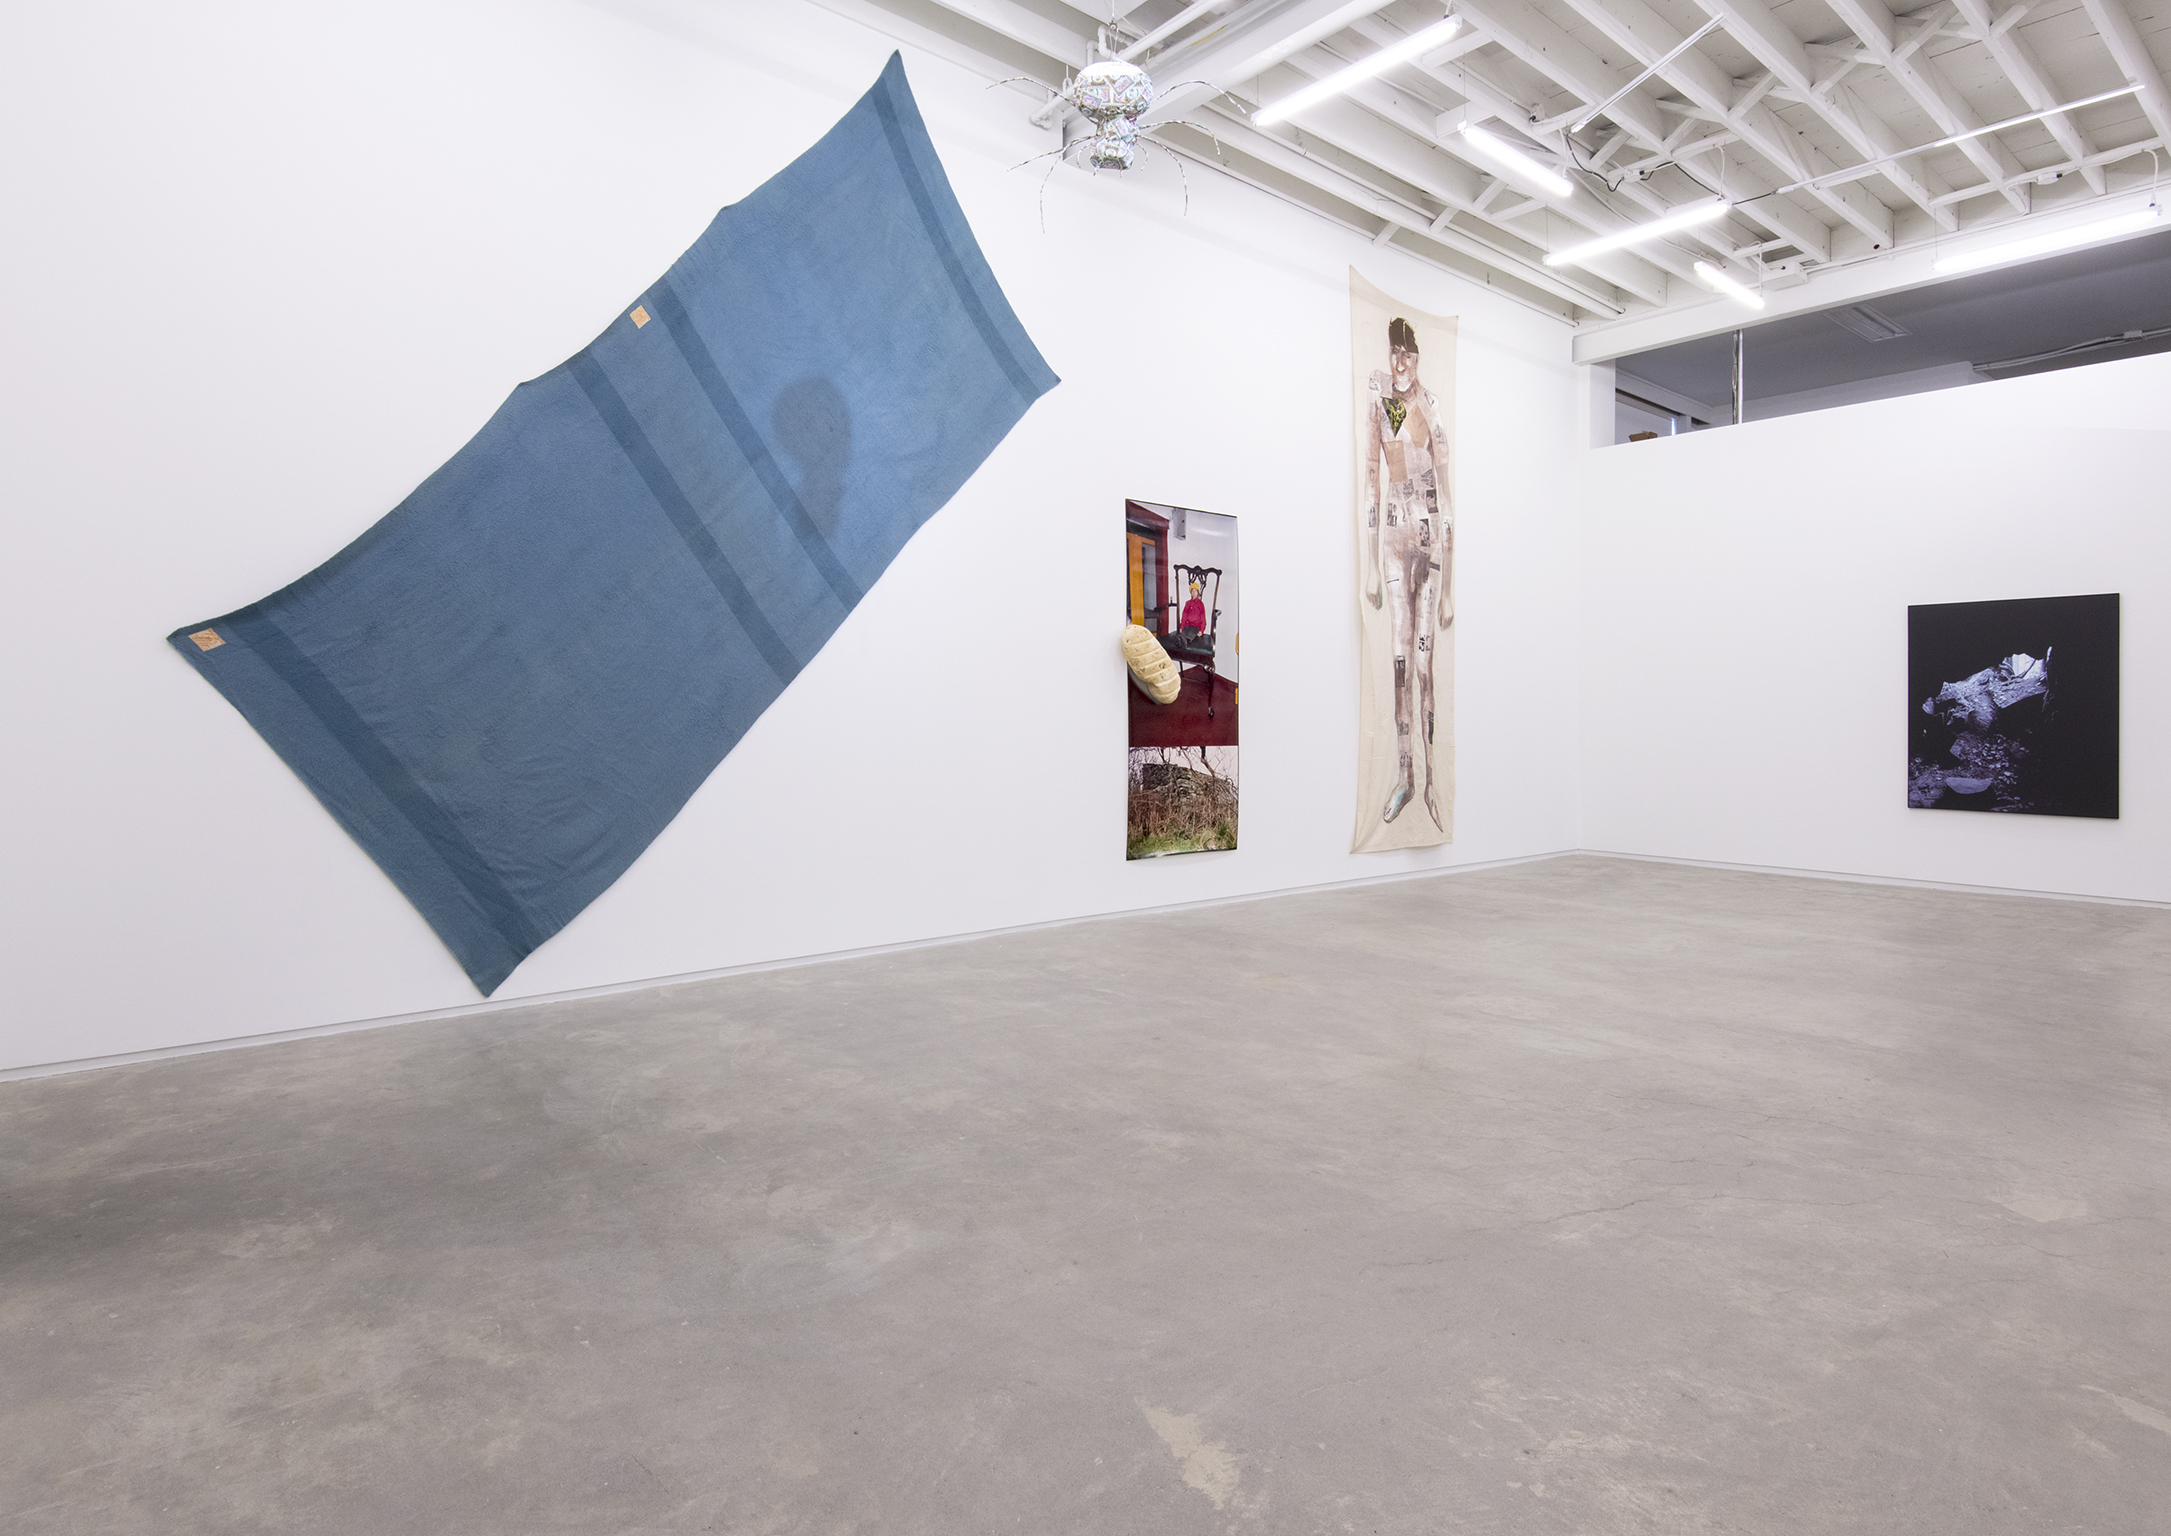 Liz Magor, Jerry Pethick, Ron Tran, installation view, A view believed to be yours, 2015 by